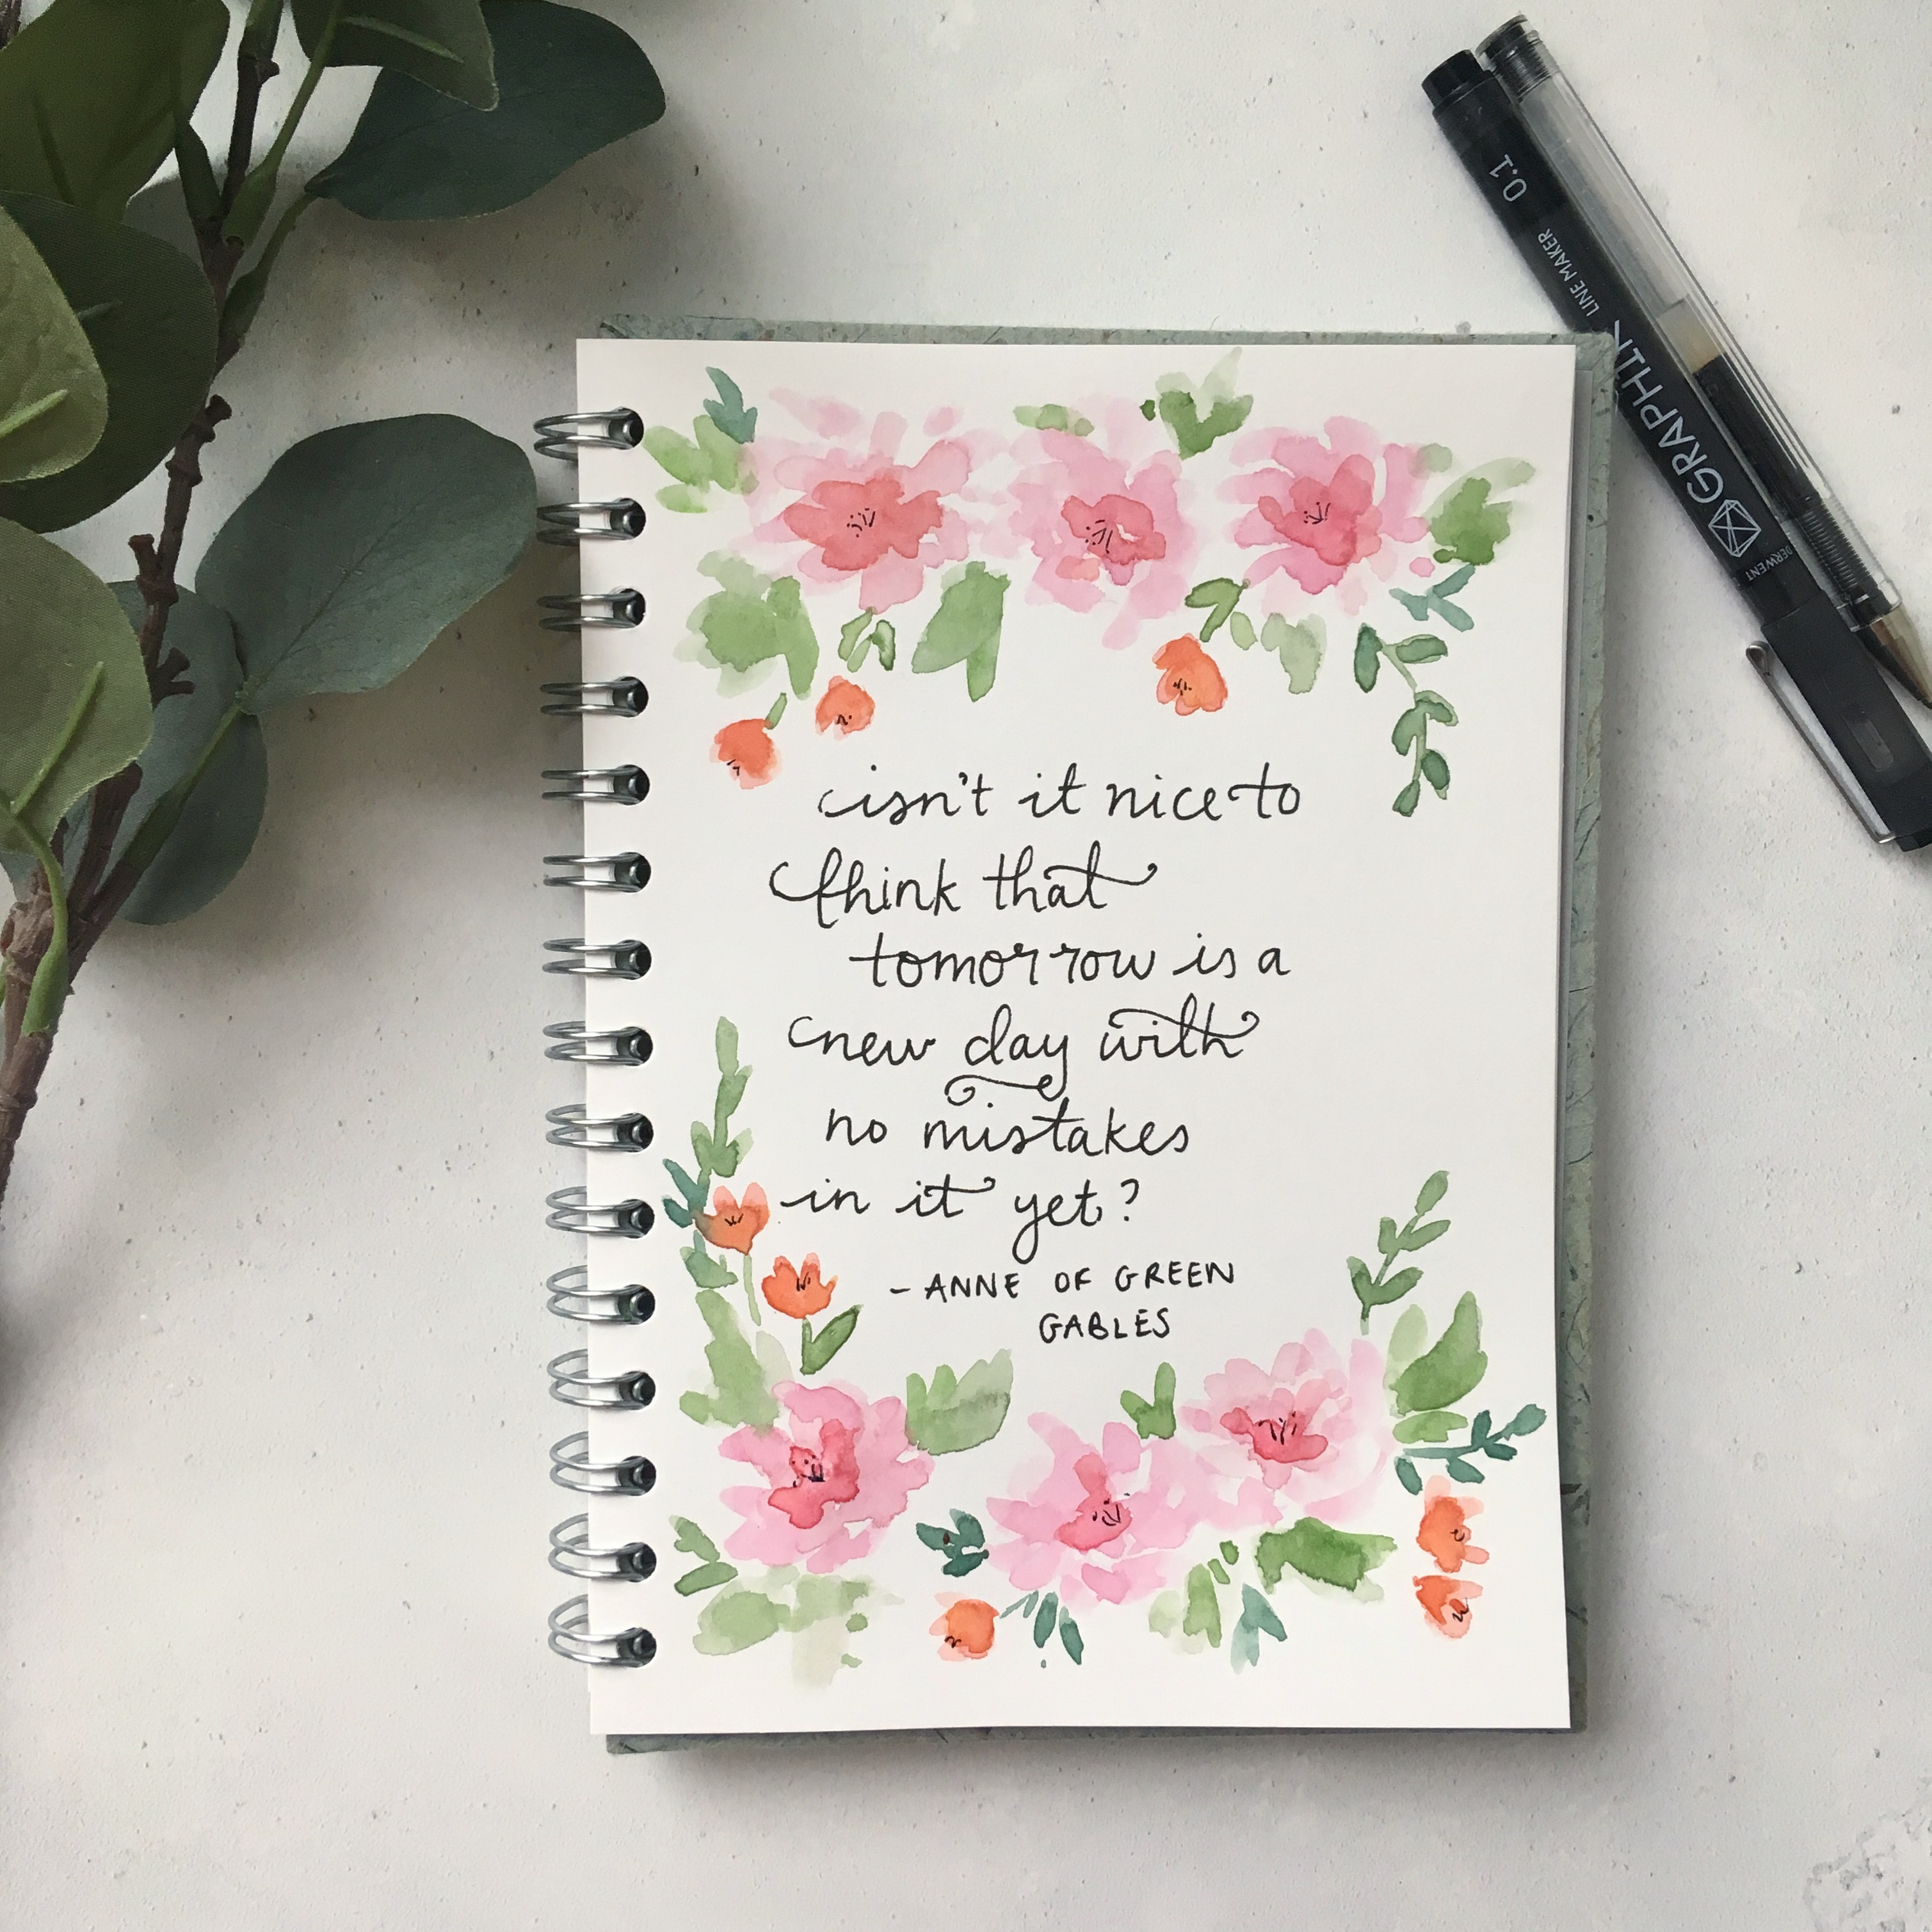 Anne of green gables quotes 100 days of flowers and prose